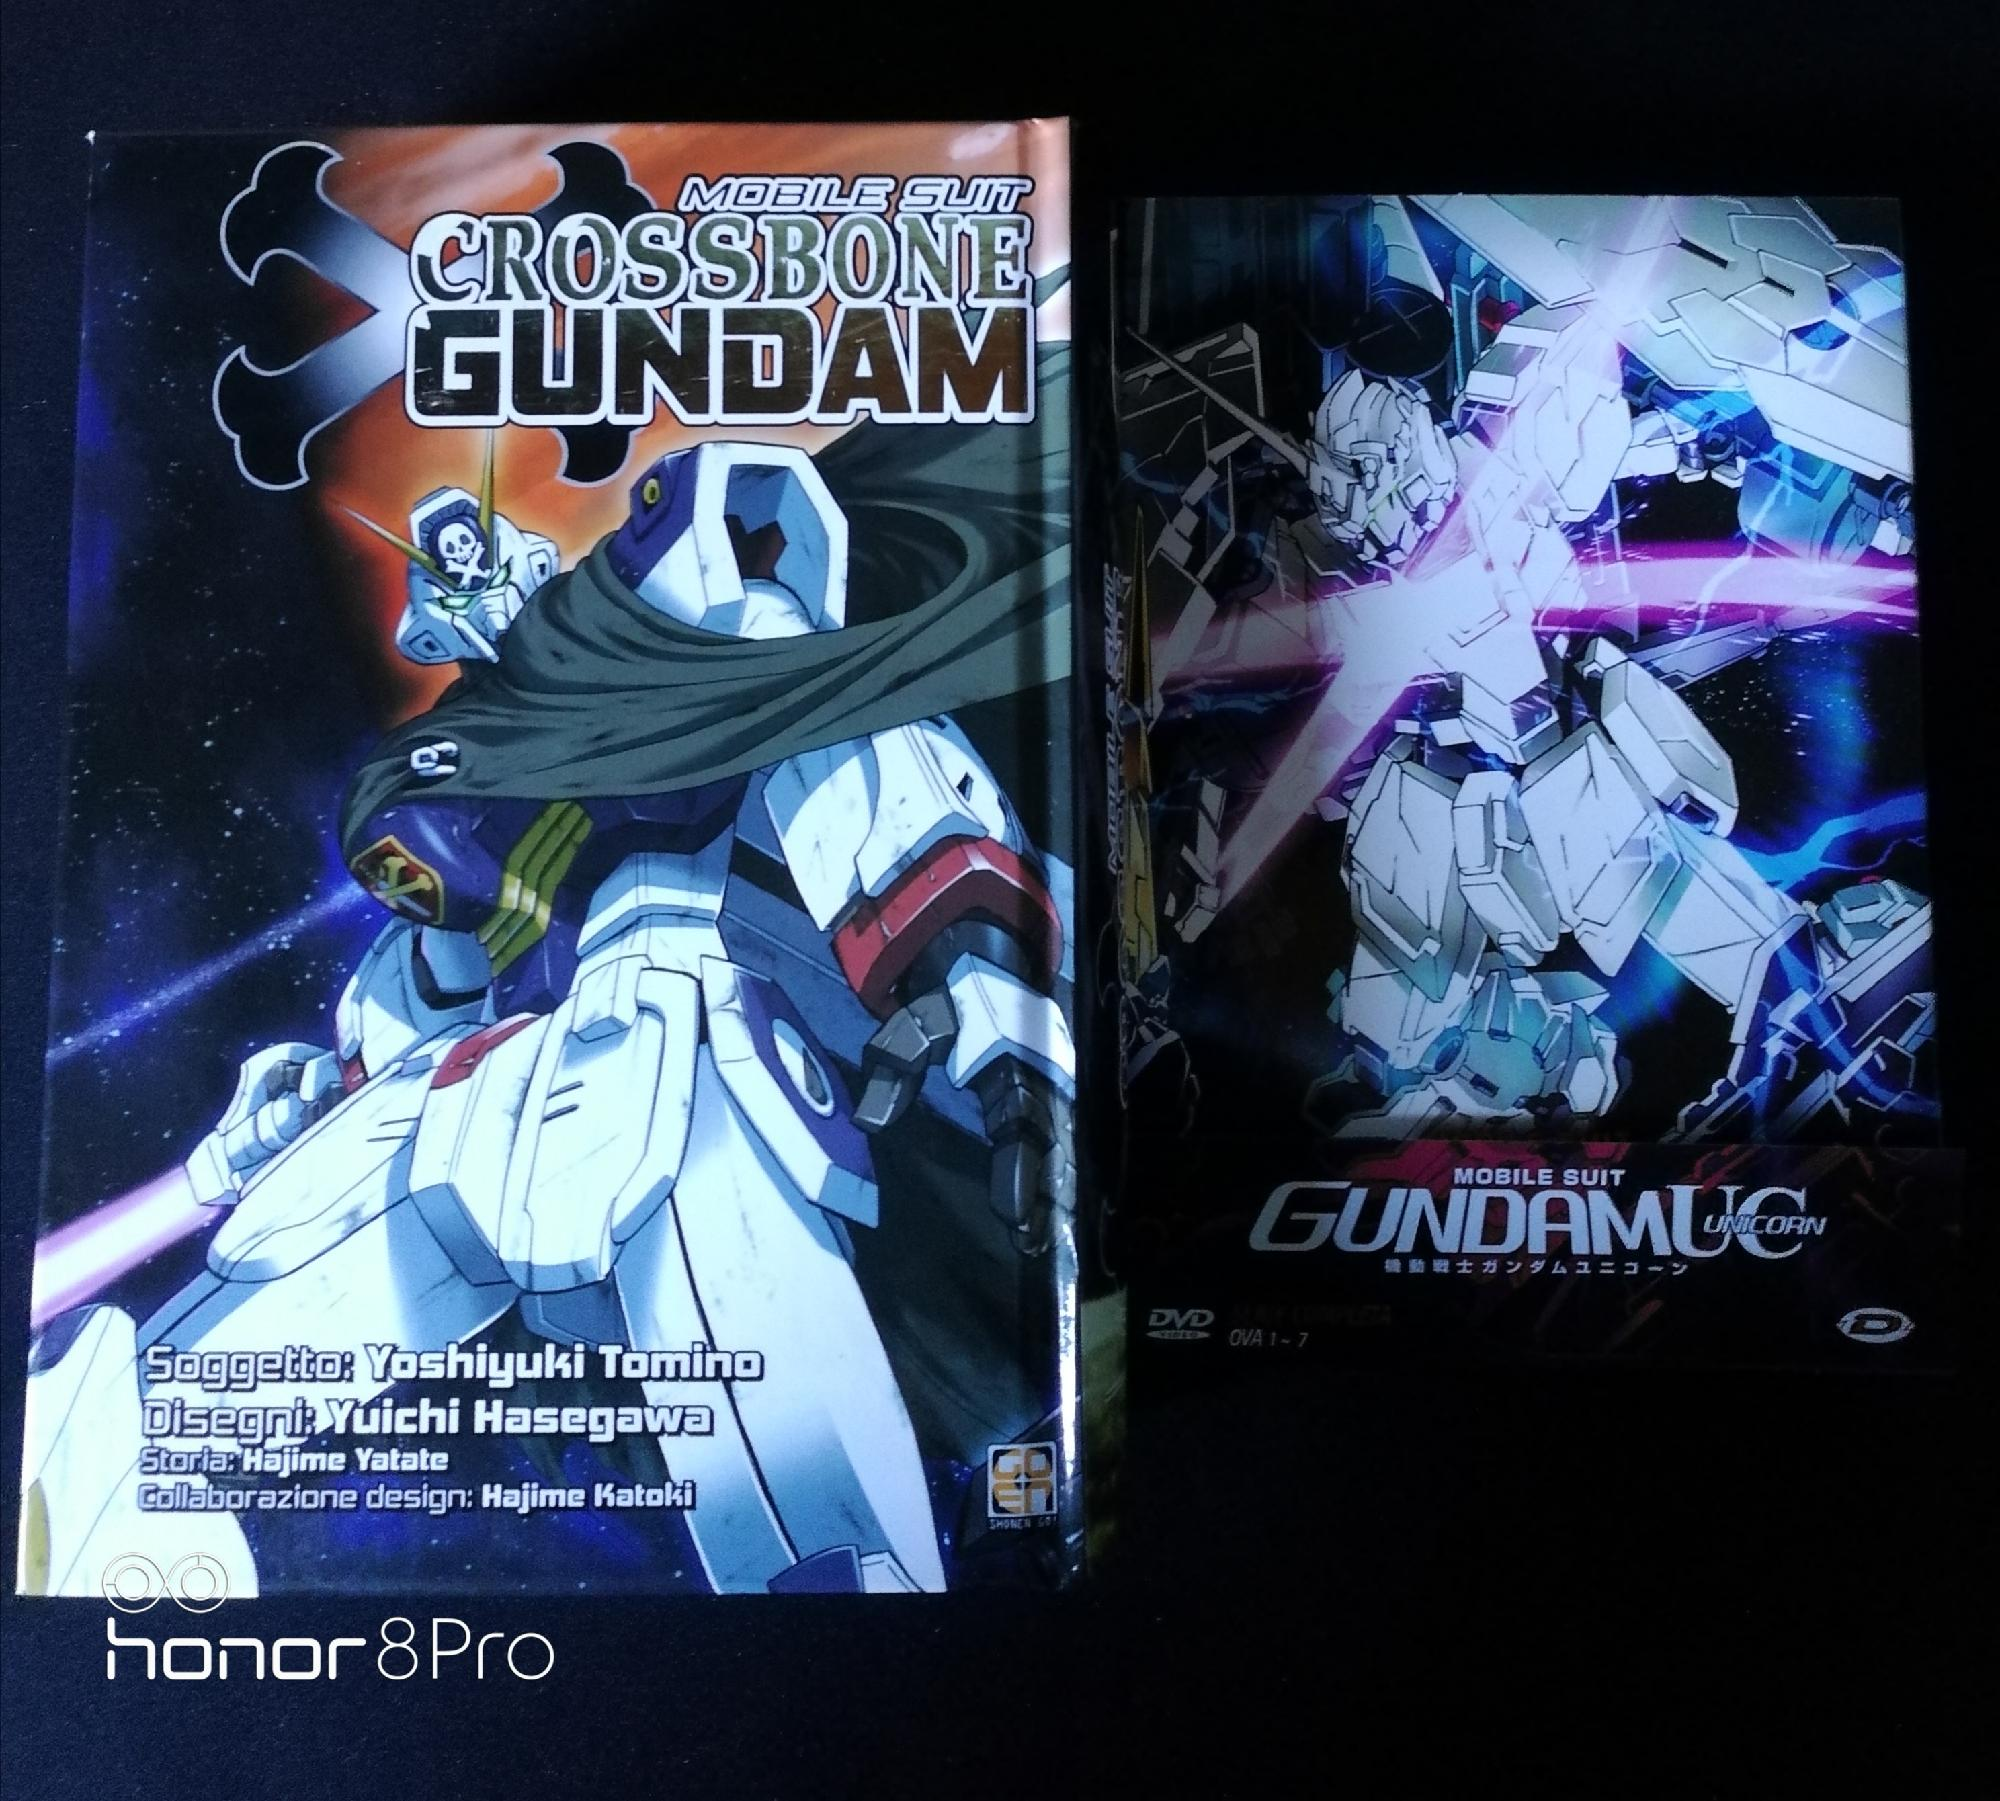 Received a bunch of gundam gifts for my birthday.